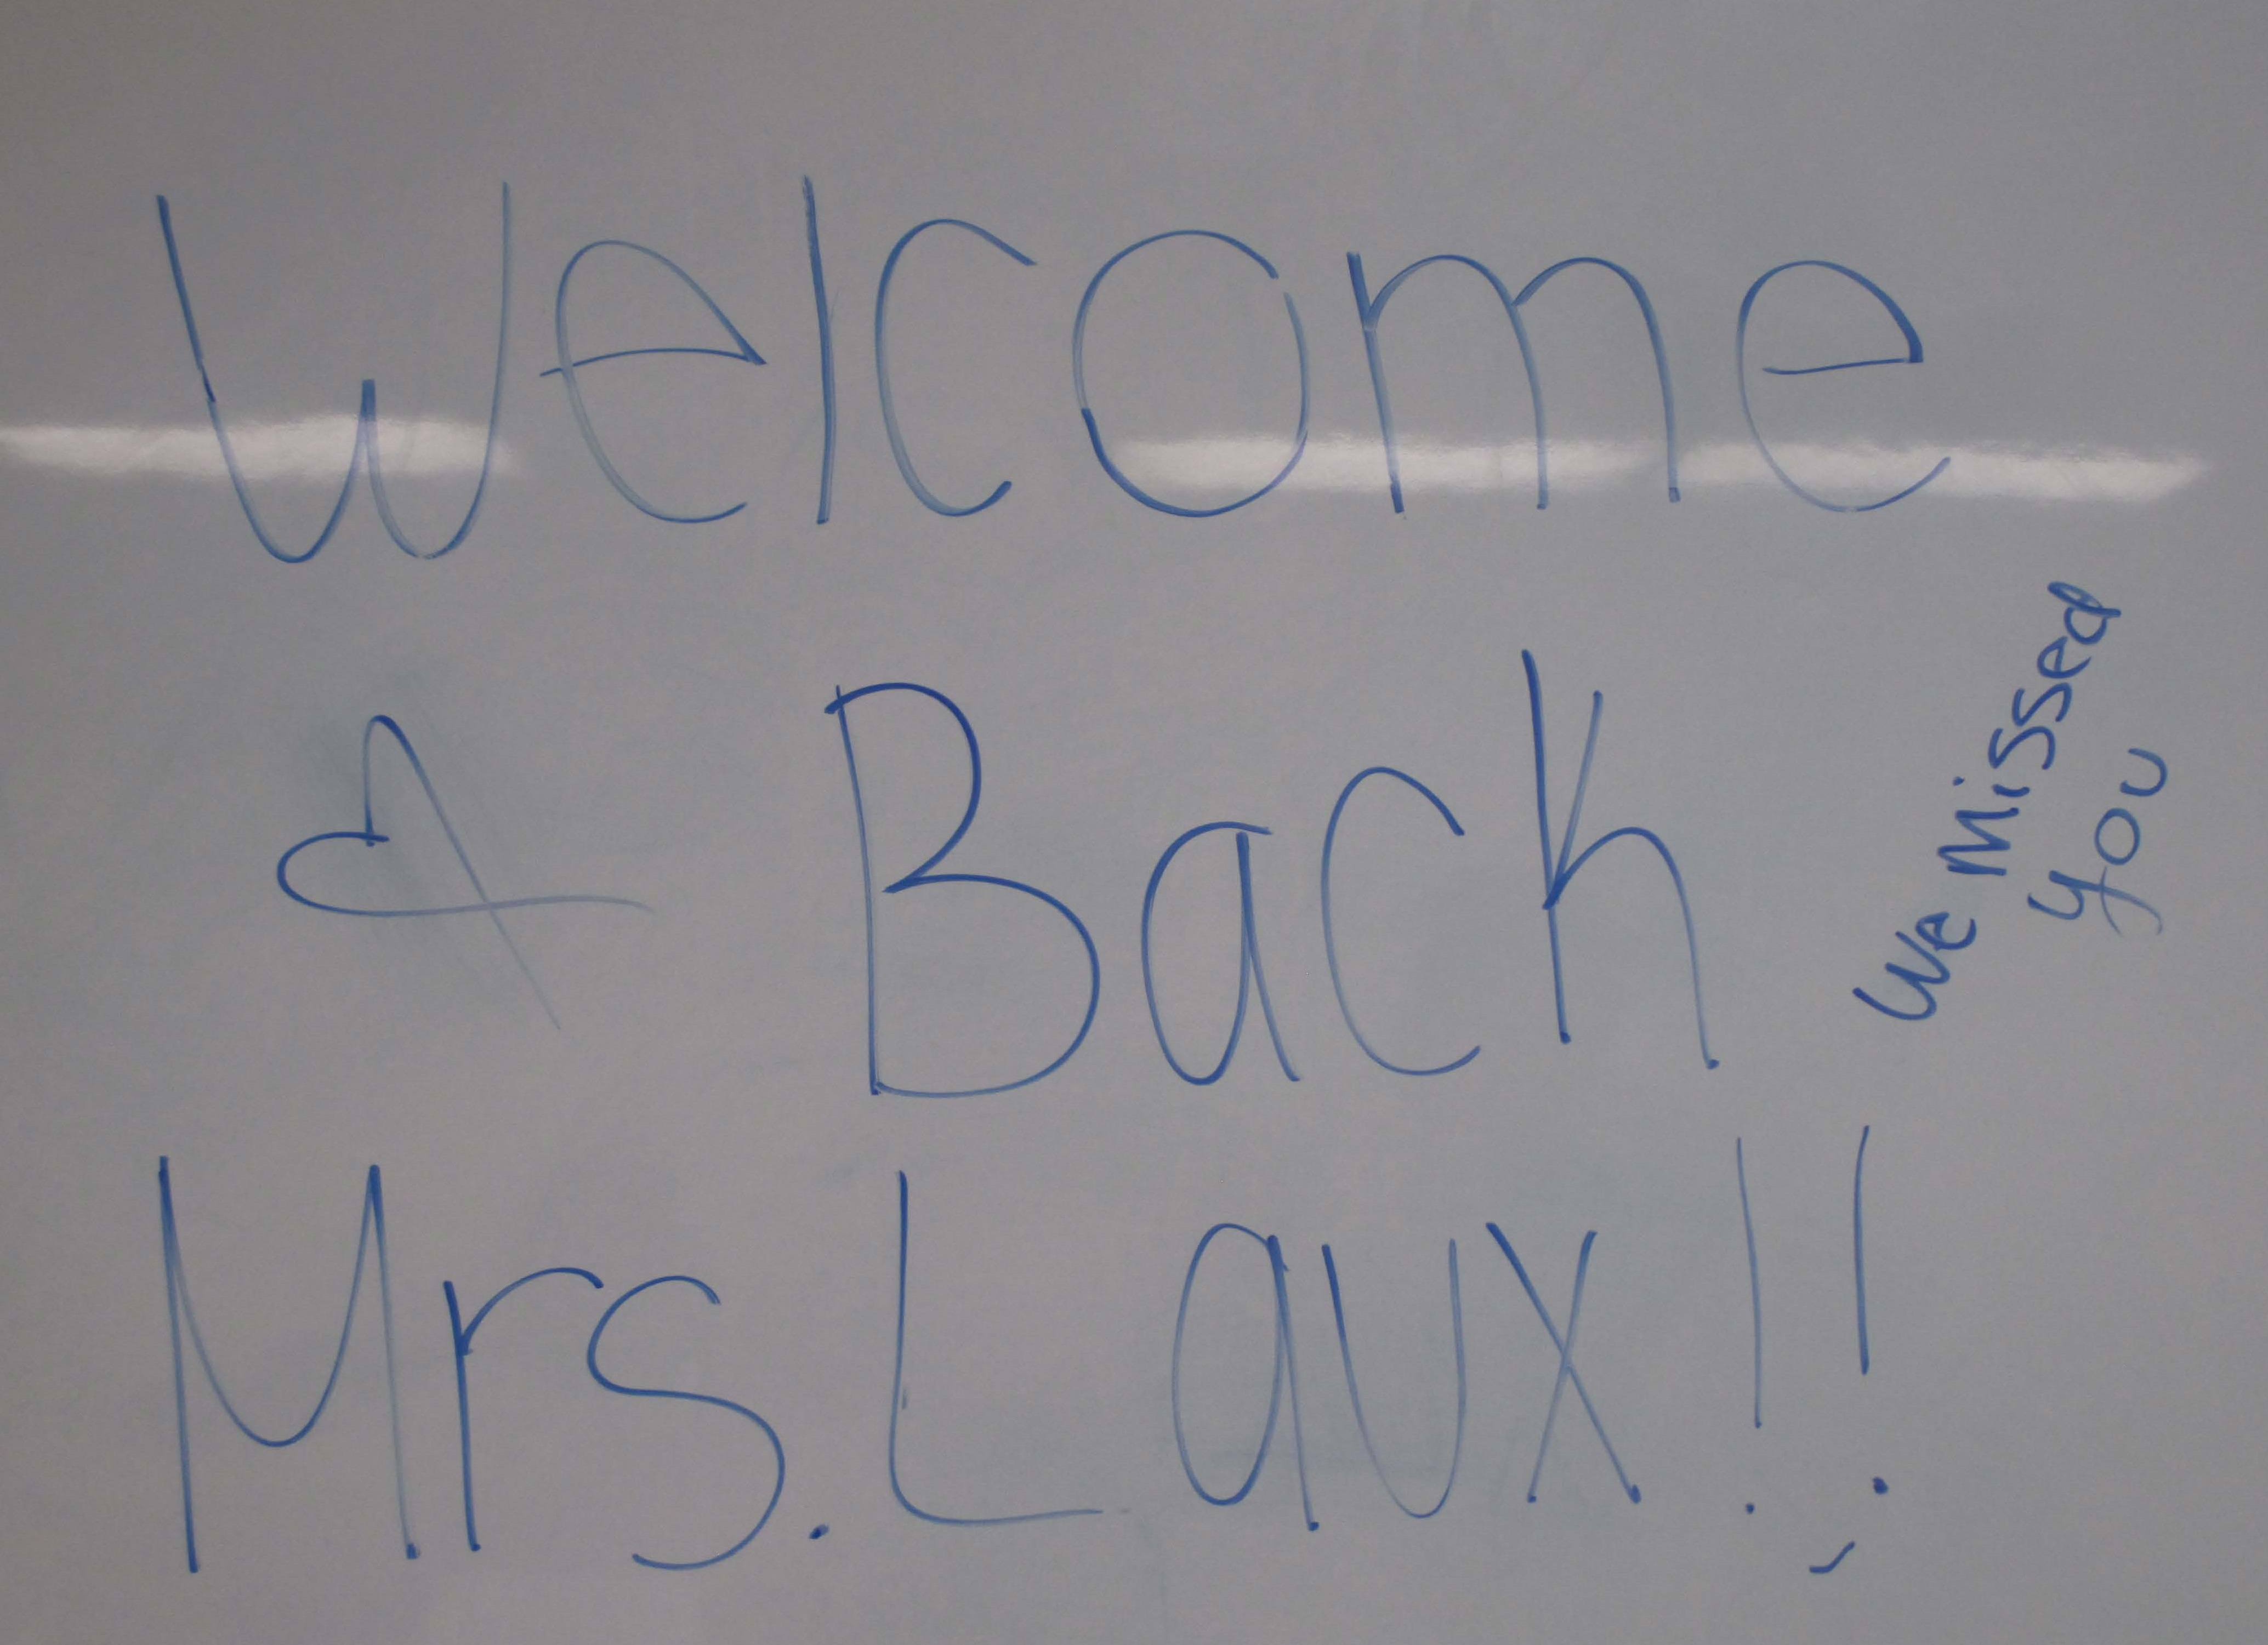 Welcome back Mrs. Laux